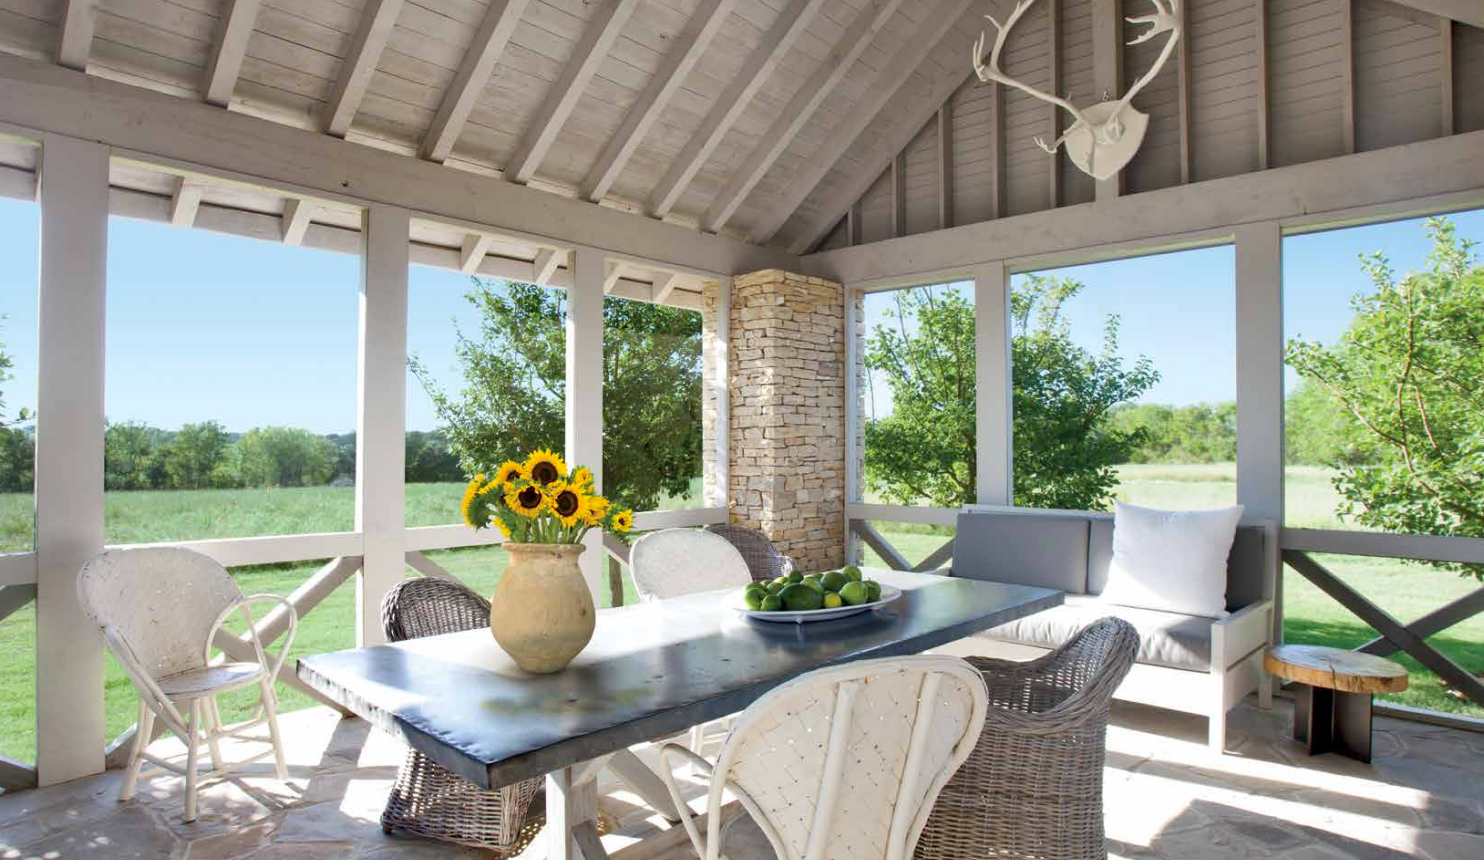 Screenporch in modern farmhouse in Texas by Eleanor Cummings